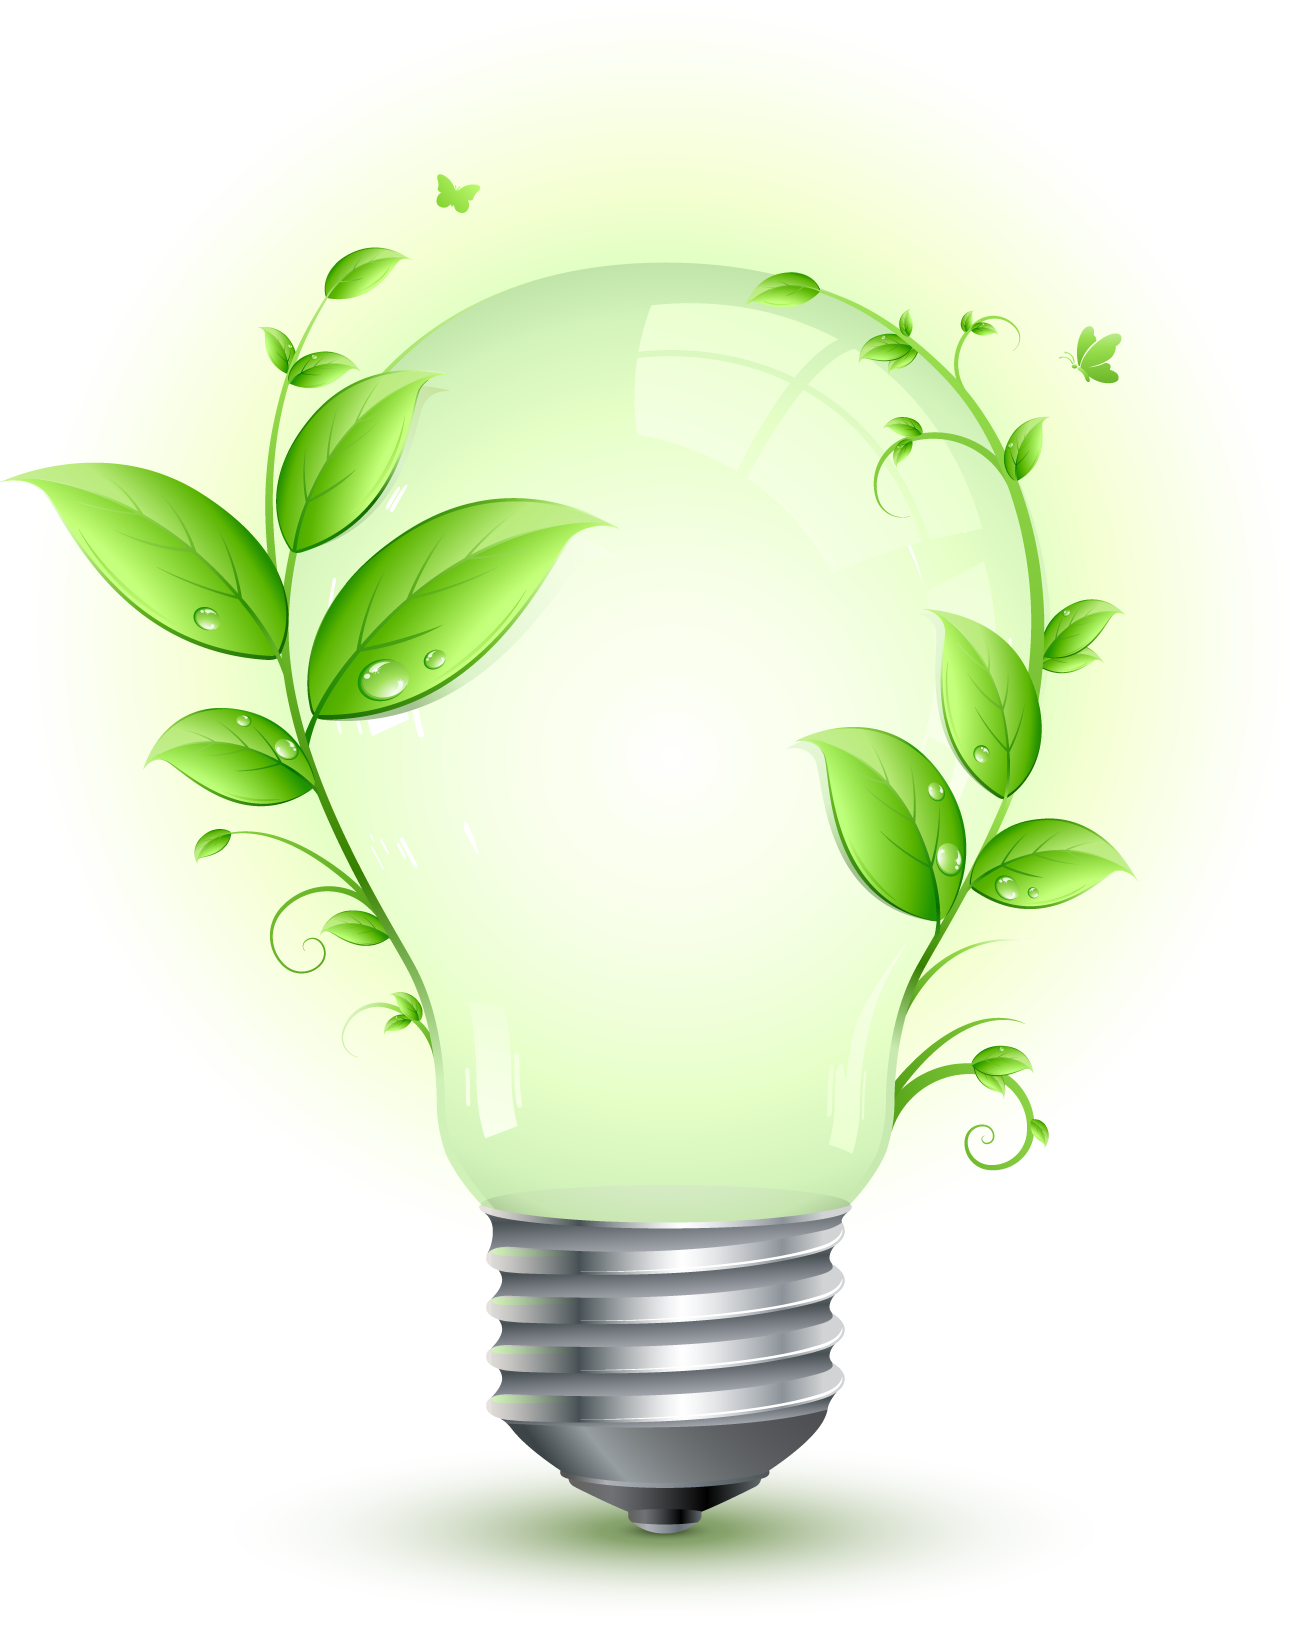 Png Save Energy - Energy Saving Lamps ., Transparent background PNG HD thumbnail